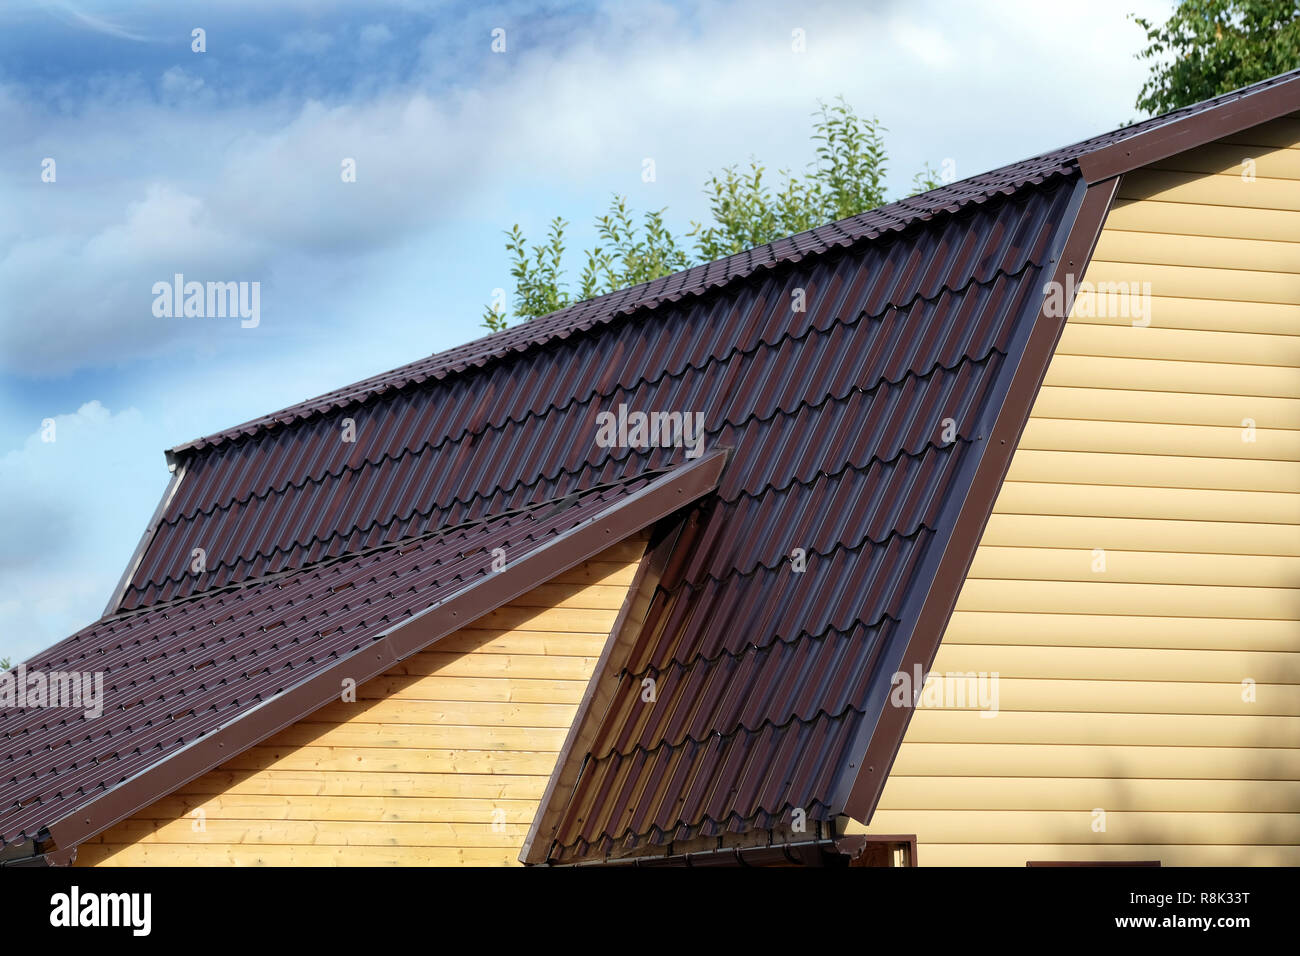 Brown metal roof of rural house covered with yellow siding over blue sky with clouds on sunny day side view - Stock Image